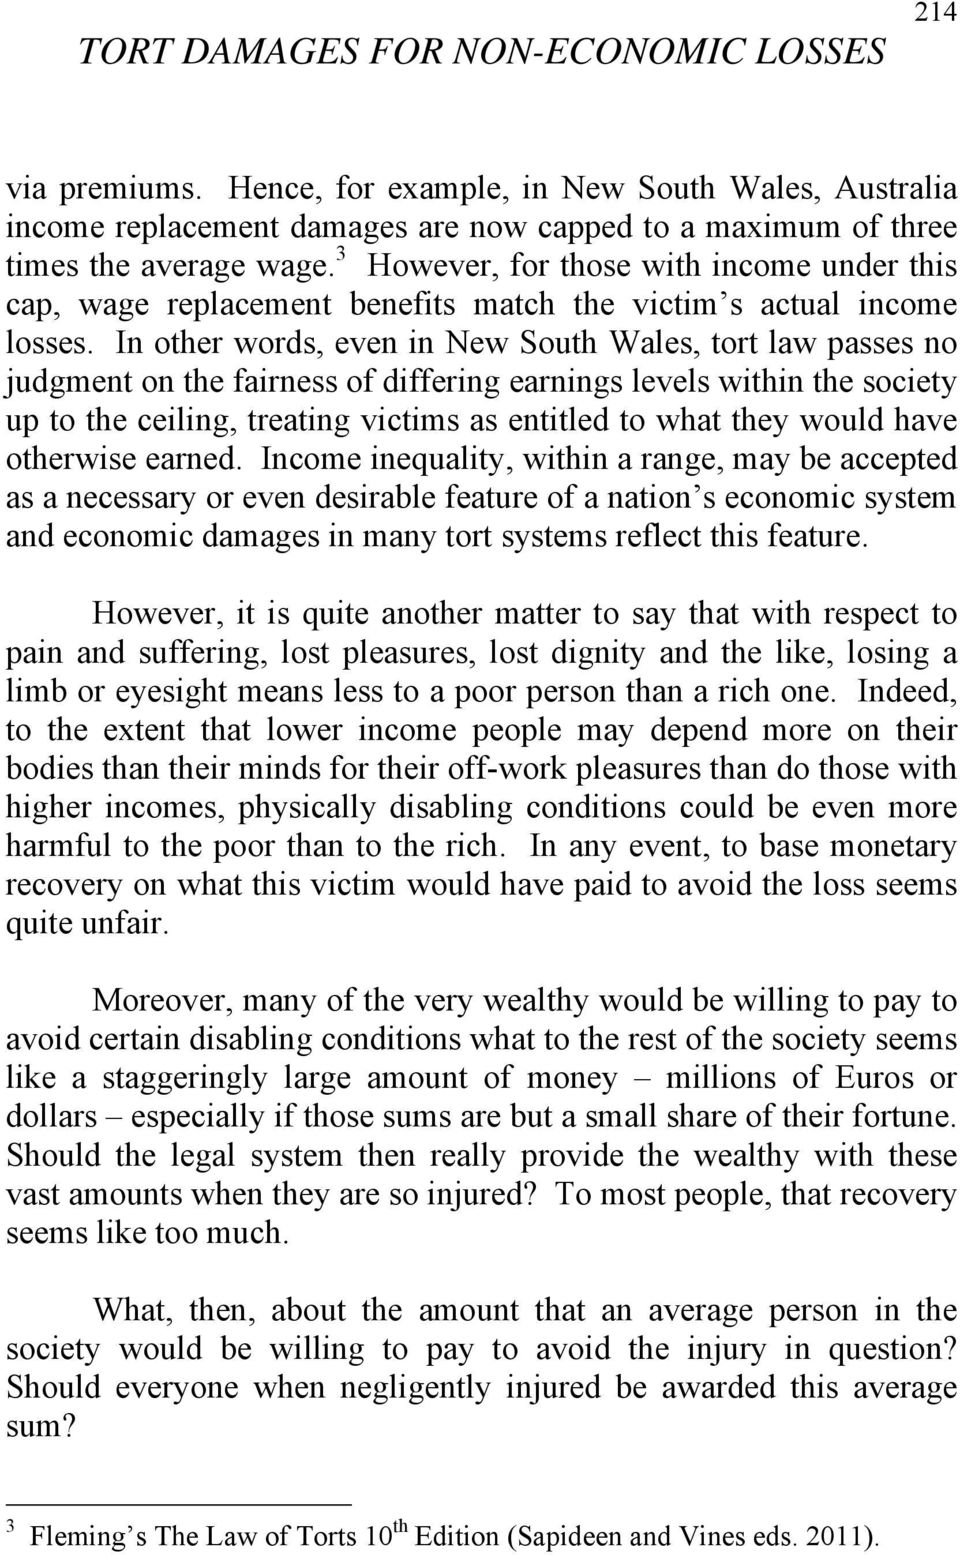 In other words, even in New South Wales, tort law passes no judgment on the fairness of differing earnings levels within the society up to the ceiling, treating victims as entitled to what they would